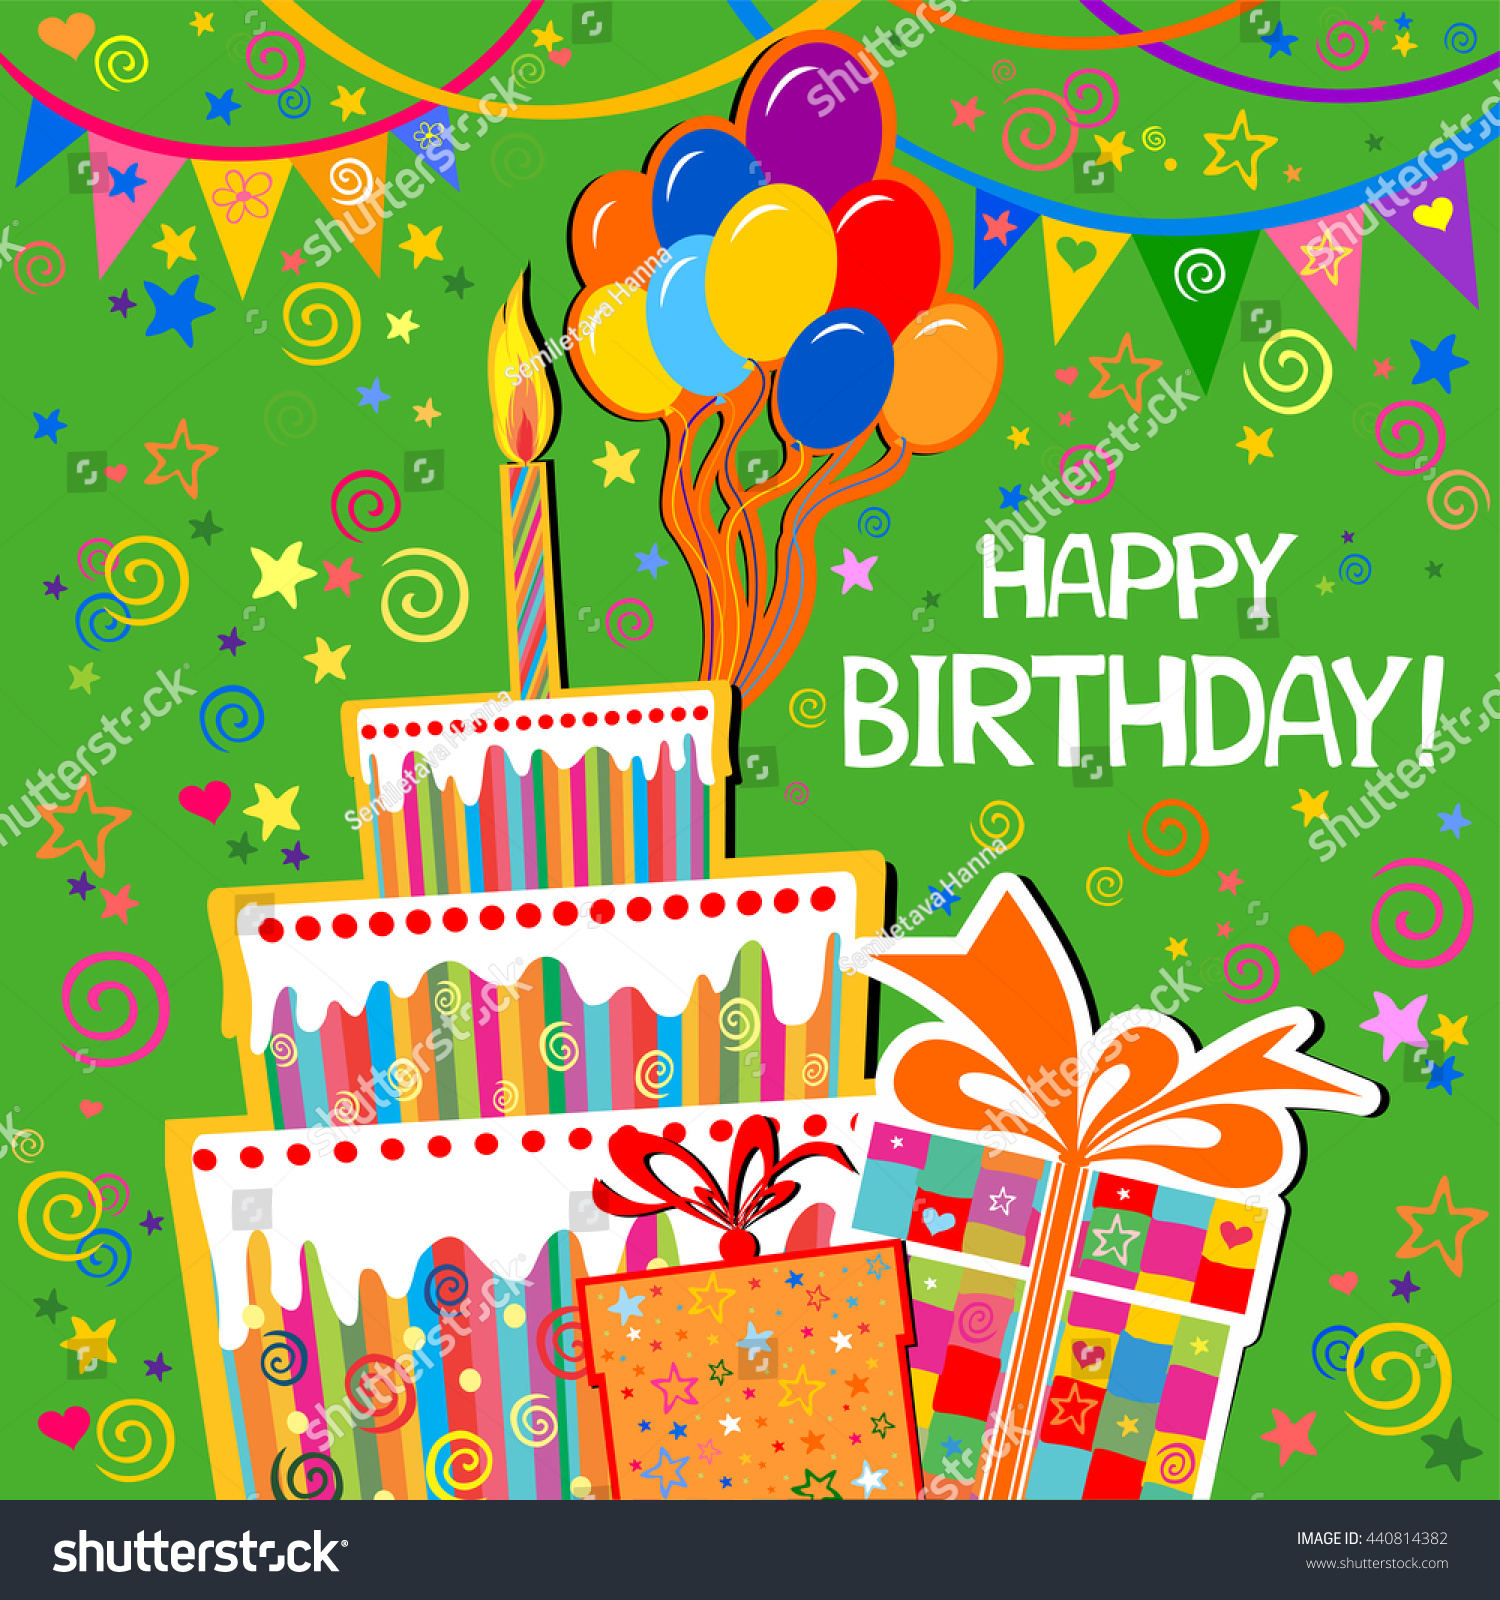 Birthday Card Celebration Green Background Gift Vector – Green Birthday Card